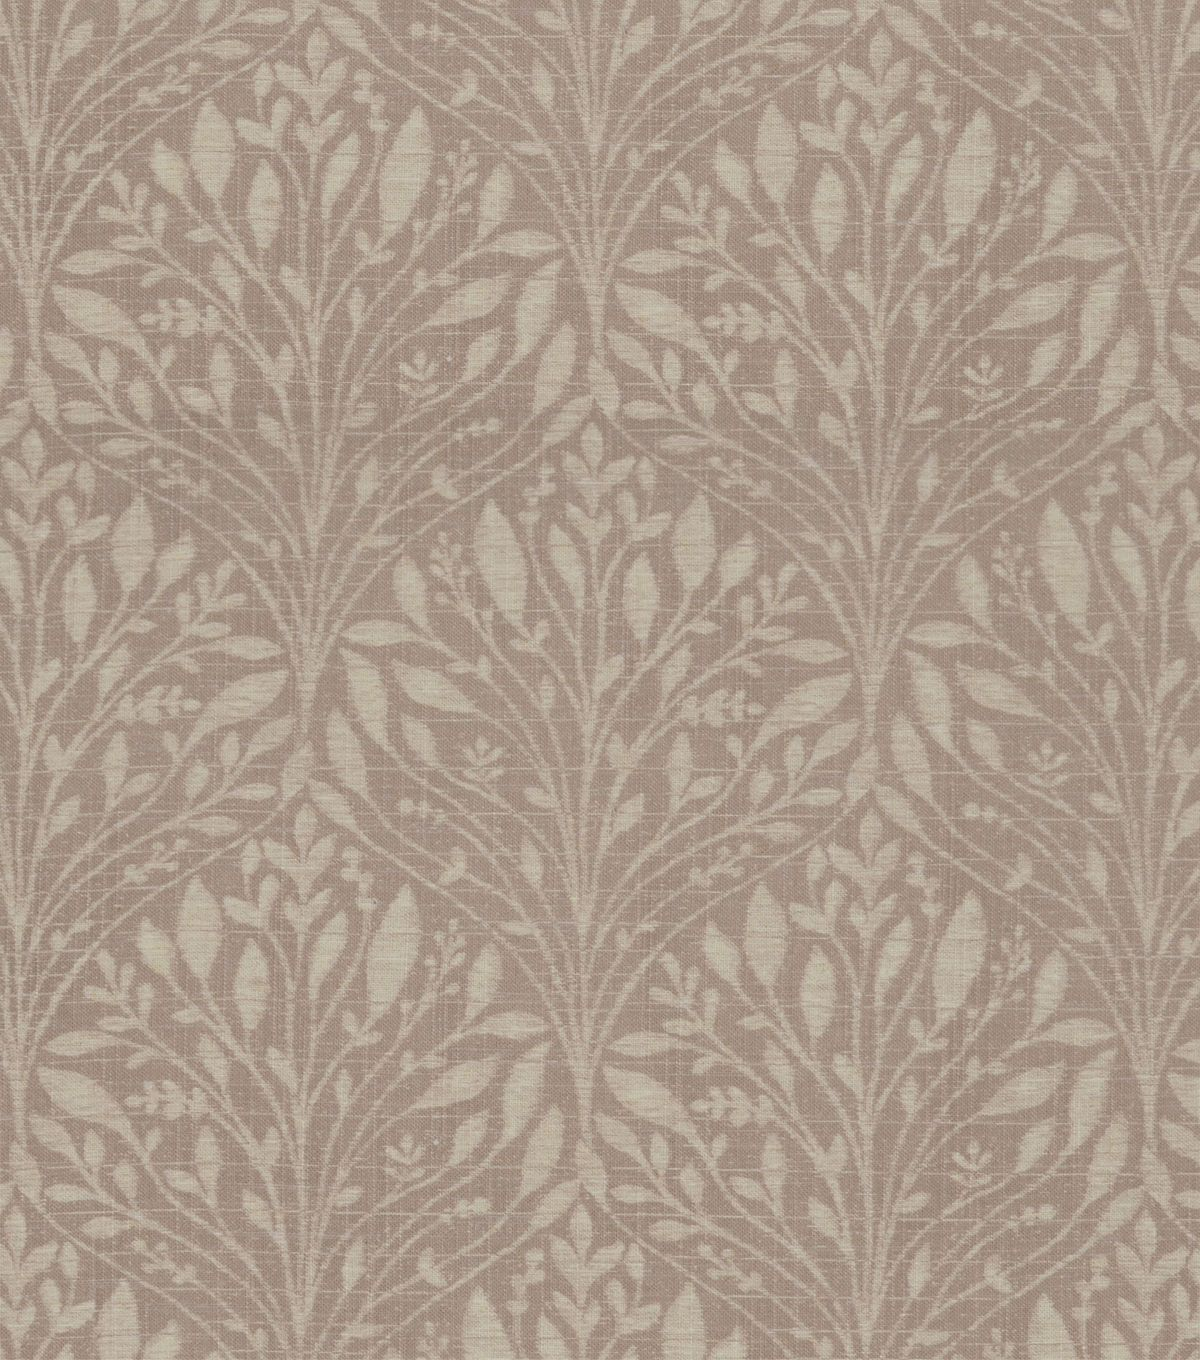 Covington Upholstery Fabric-Blissful 427 Heather Moon